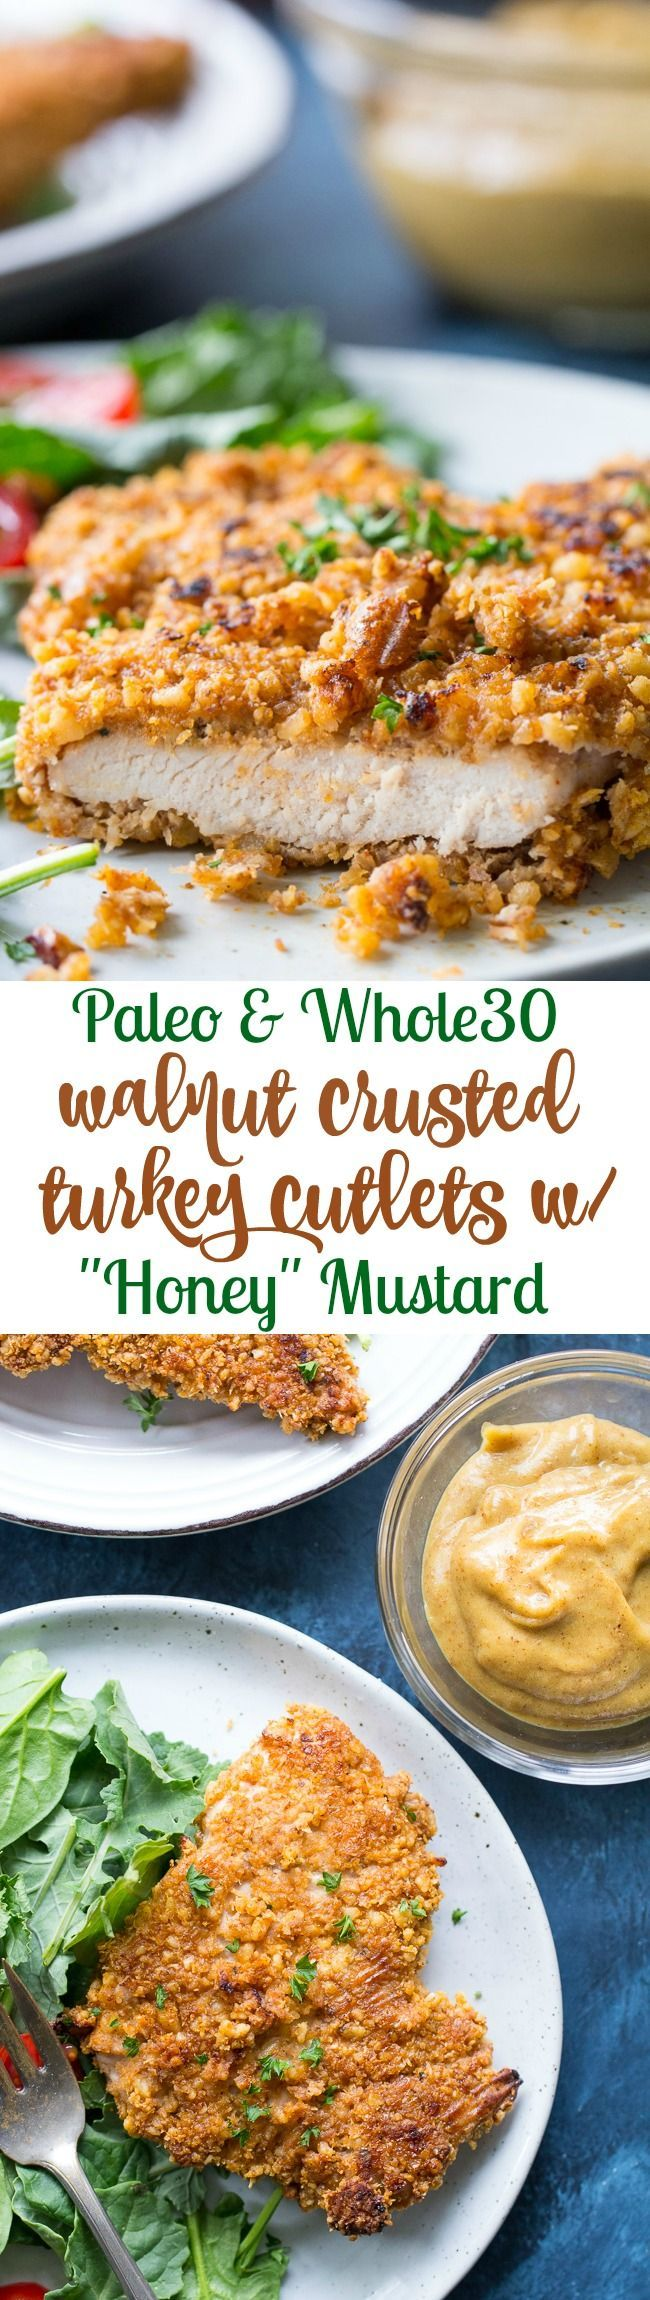 "These crispy walnut crusted turkey cutlets are baked with a date-sweetened ""honey"" mustard sauce for a delicious and healthy Paleo and Whole30 friendly meal! Extra sauce for dipping makes these fun and kid-approved too.  (#AD) Made in partnership with @serveturkey for #TurkeyLovers Month."